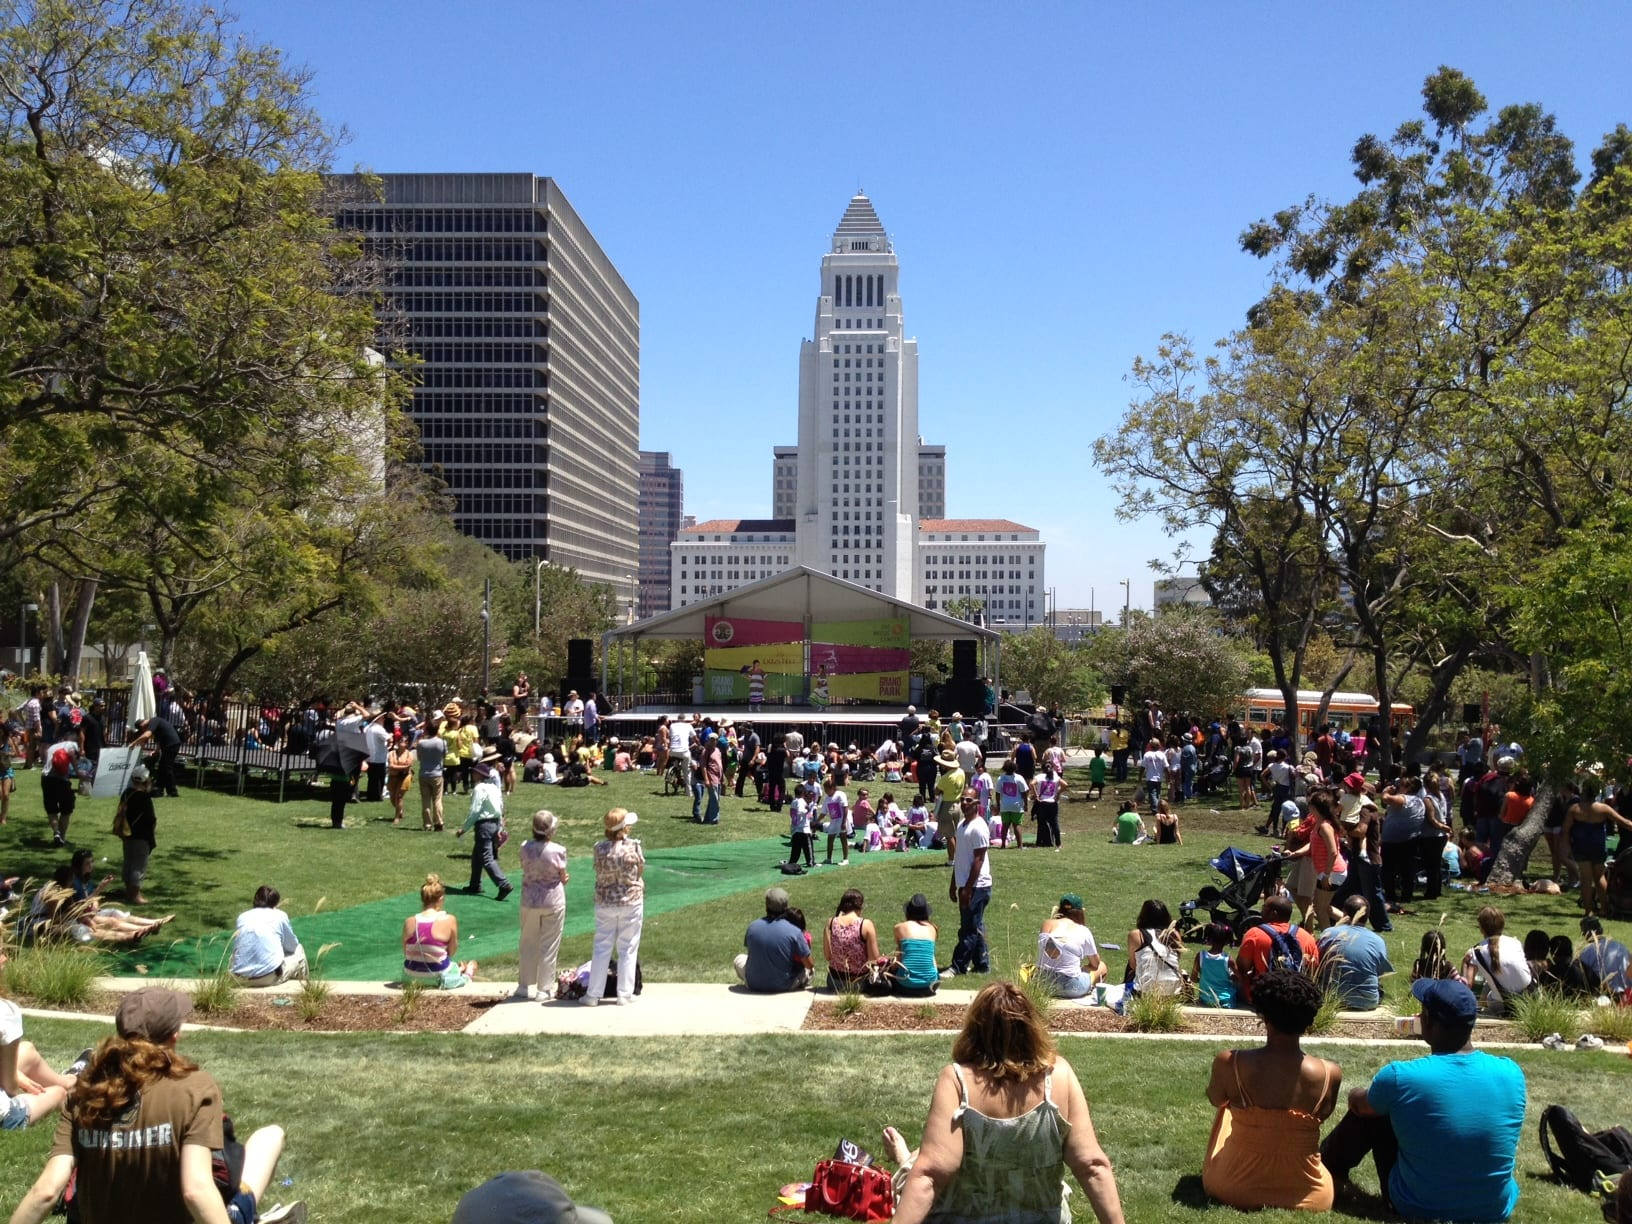 Attend the Downtown Book Fest in the lovely Grand Park this Saturday (image via Creative Commons).